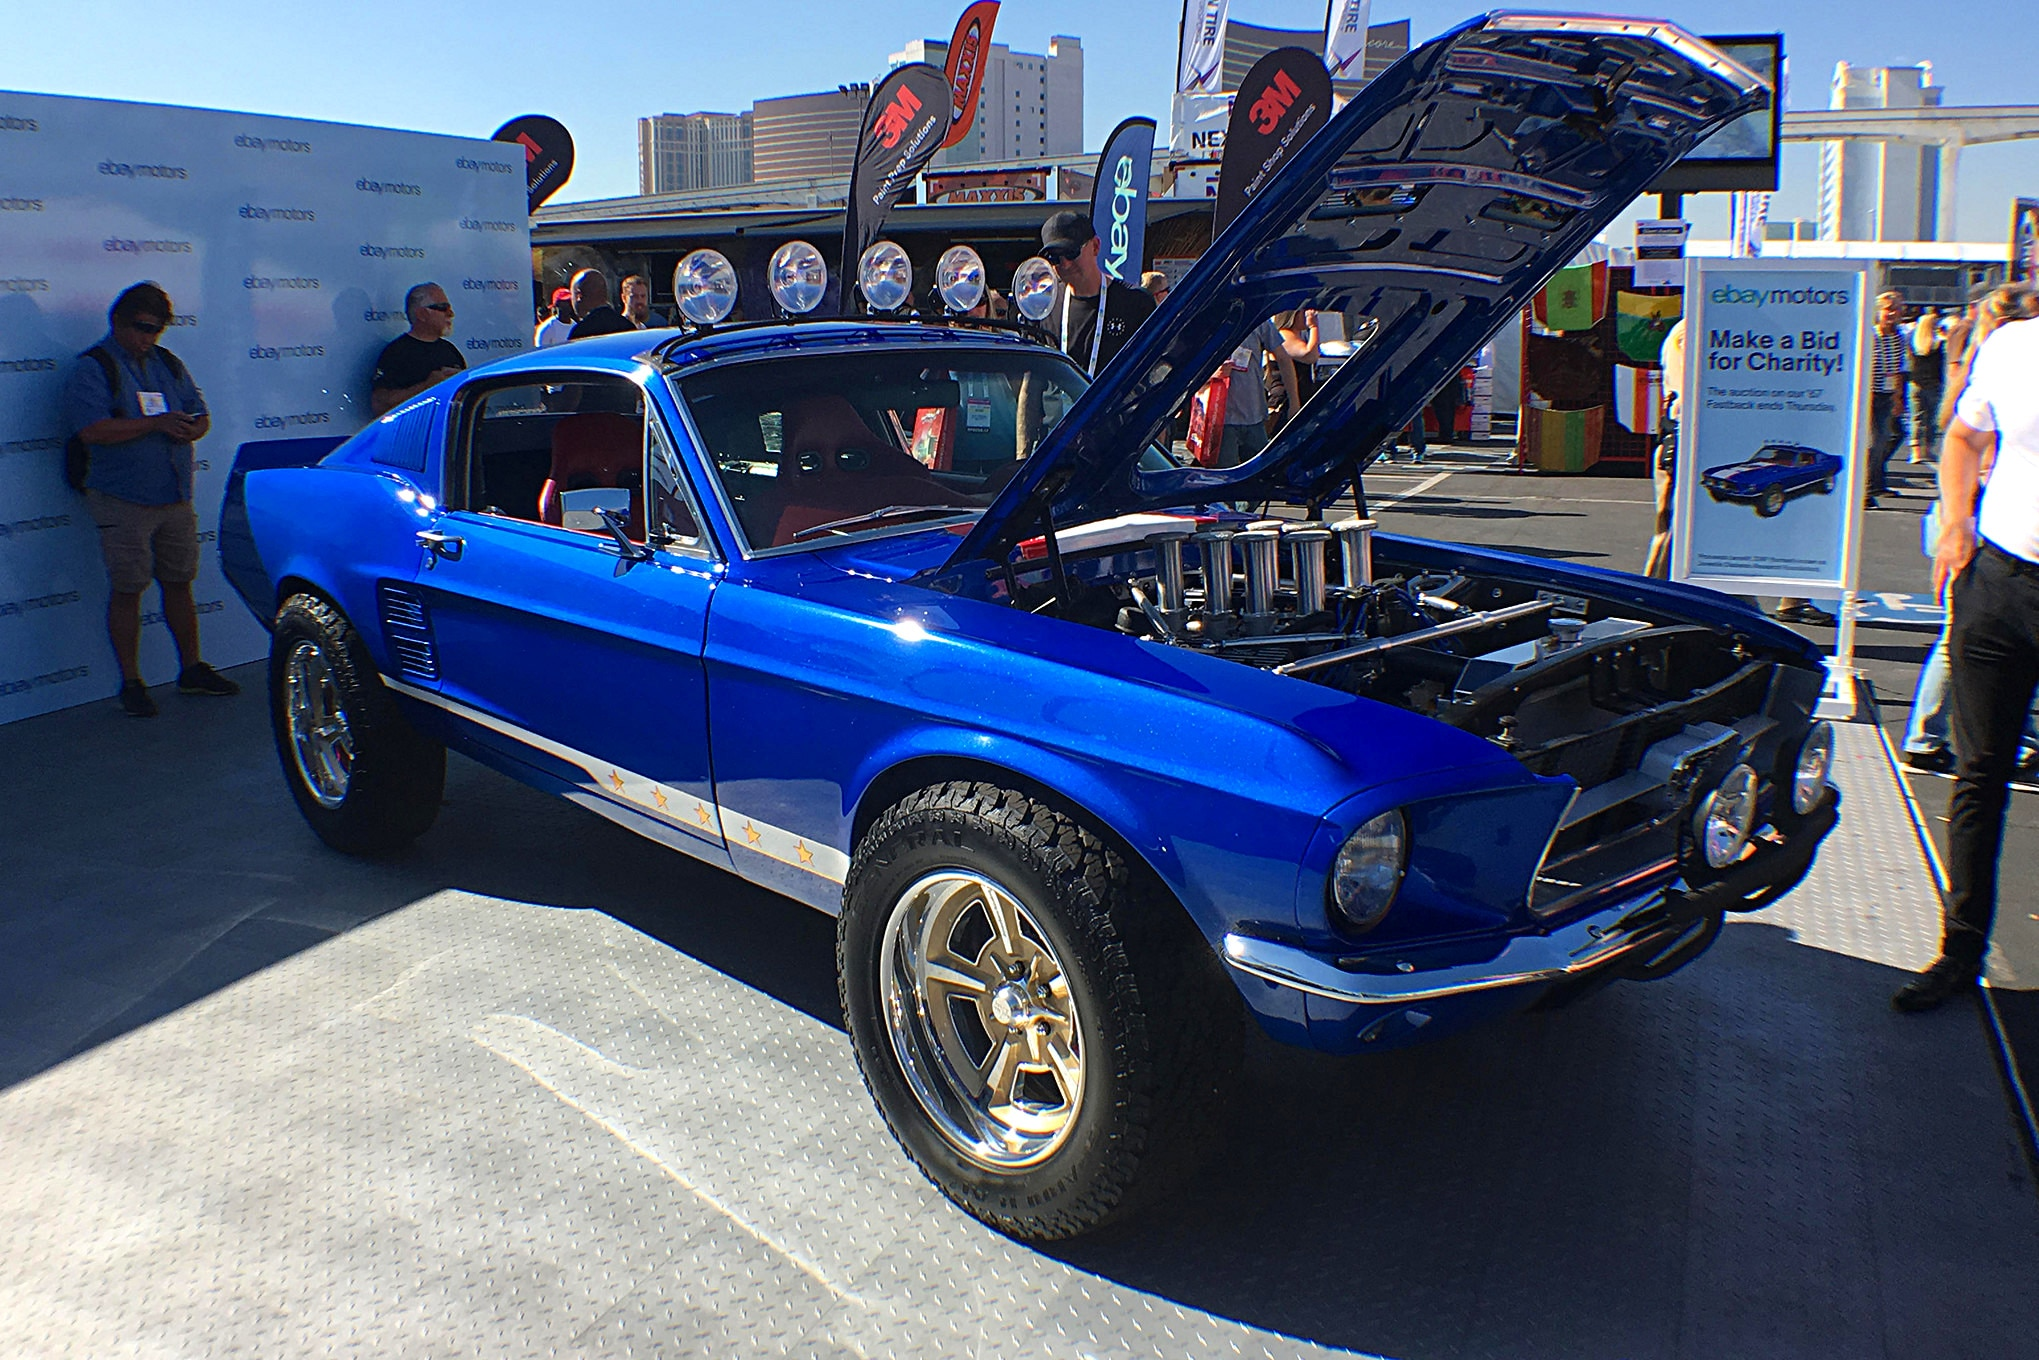 A more unusual build was this very cool off-road Mustang.